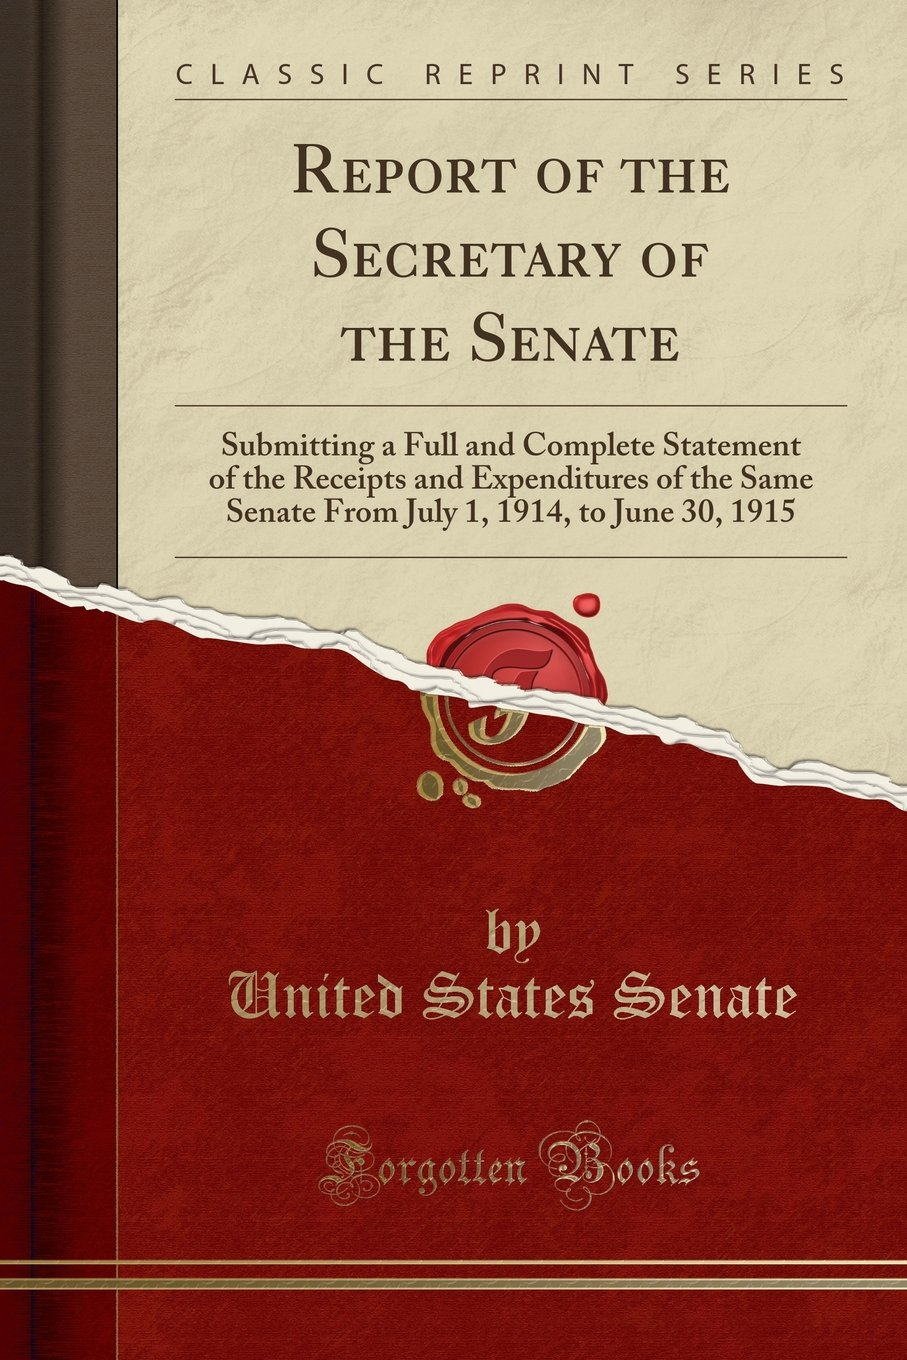 Report of the Secretary of the Senate: Submitting a Full and Complete Statement of the Receipts and Expenditures of the Same Senate from July 1, 1914, to June 30, 1915 (Classic Reprint) ebook